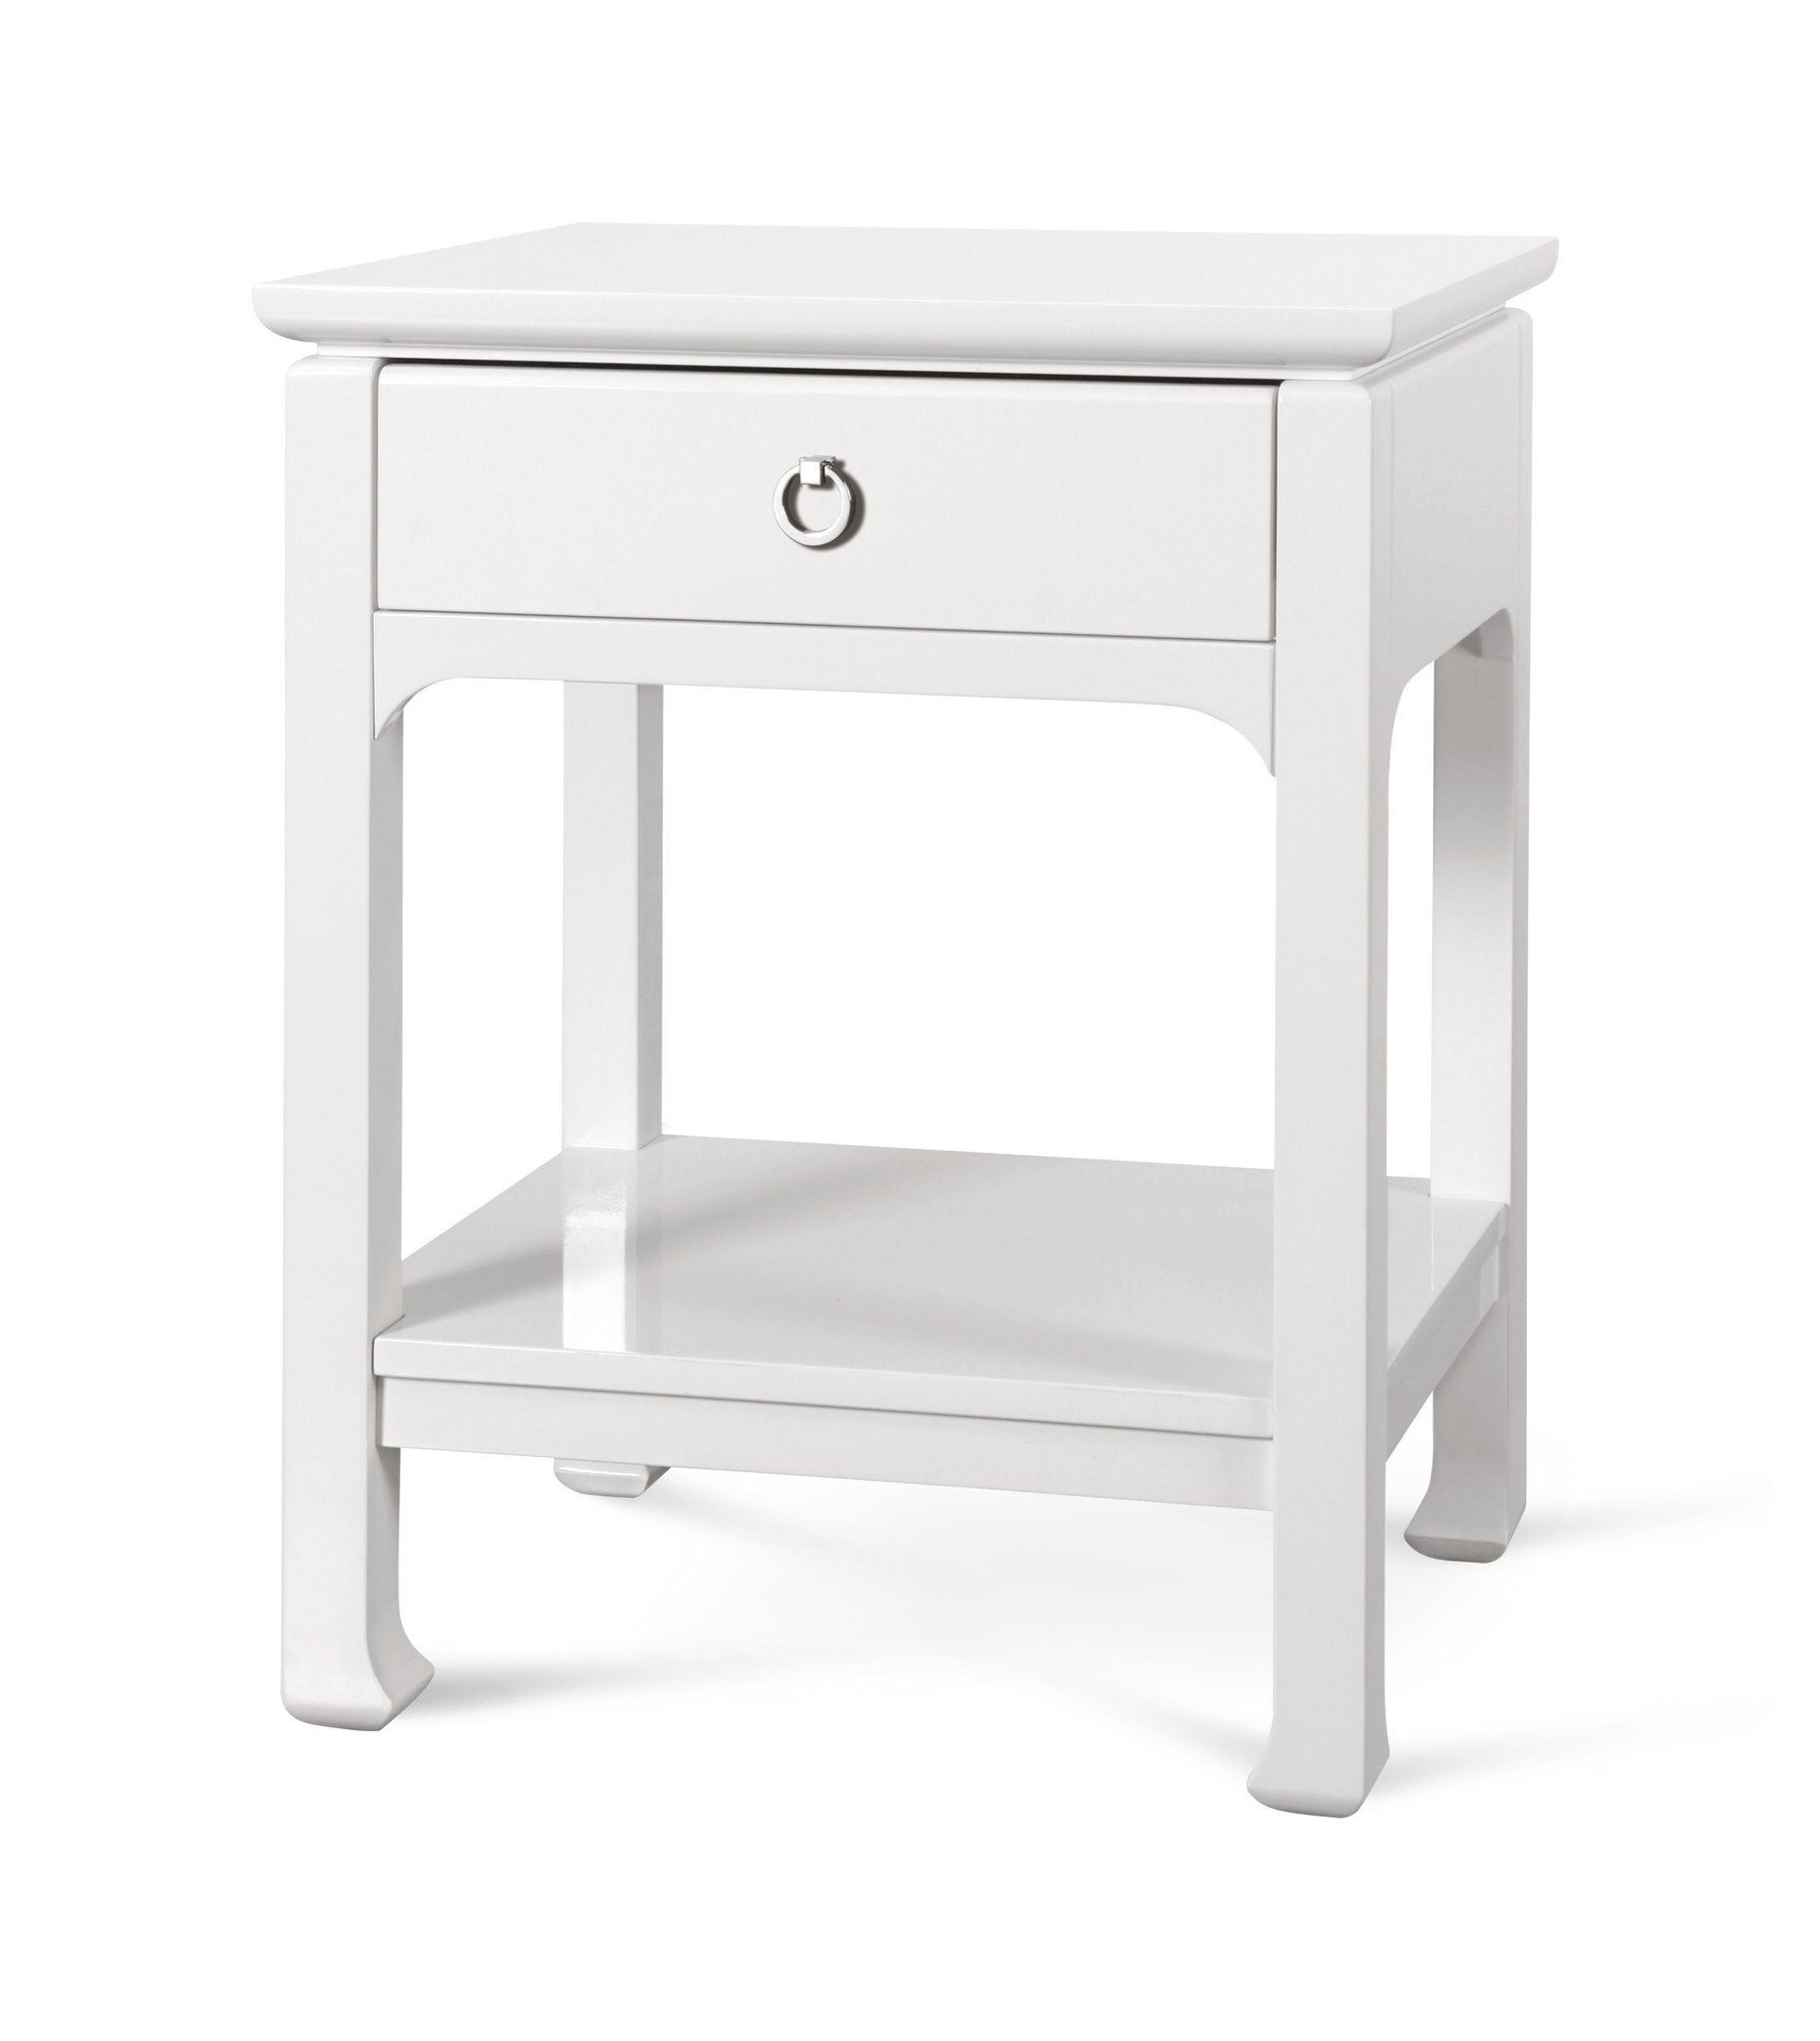 harlow drawer side table white design bungalow burke decor har accent verizon hallway target lamps for living room extra large gray brown end tables lanai furniture building barn